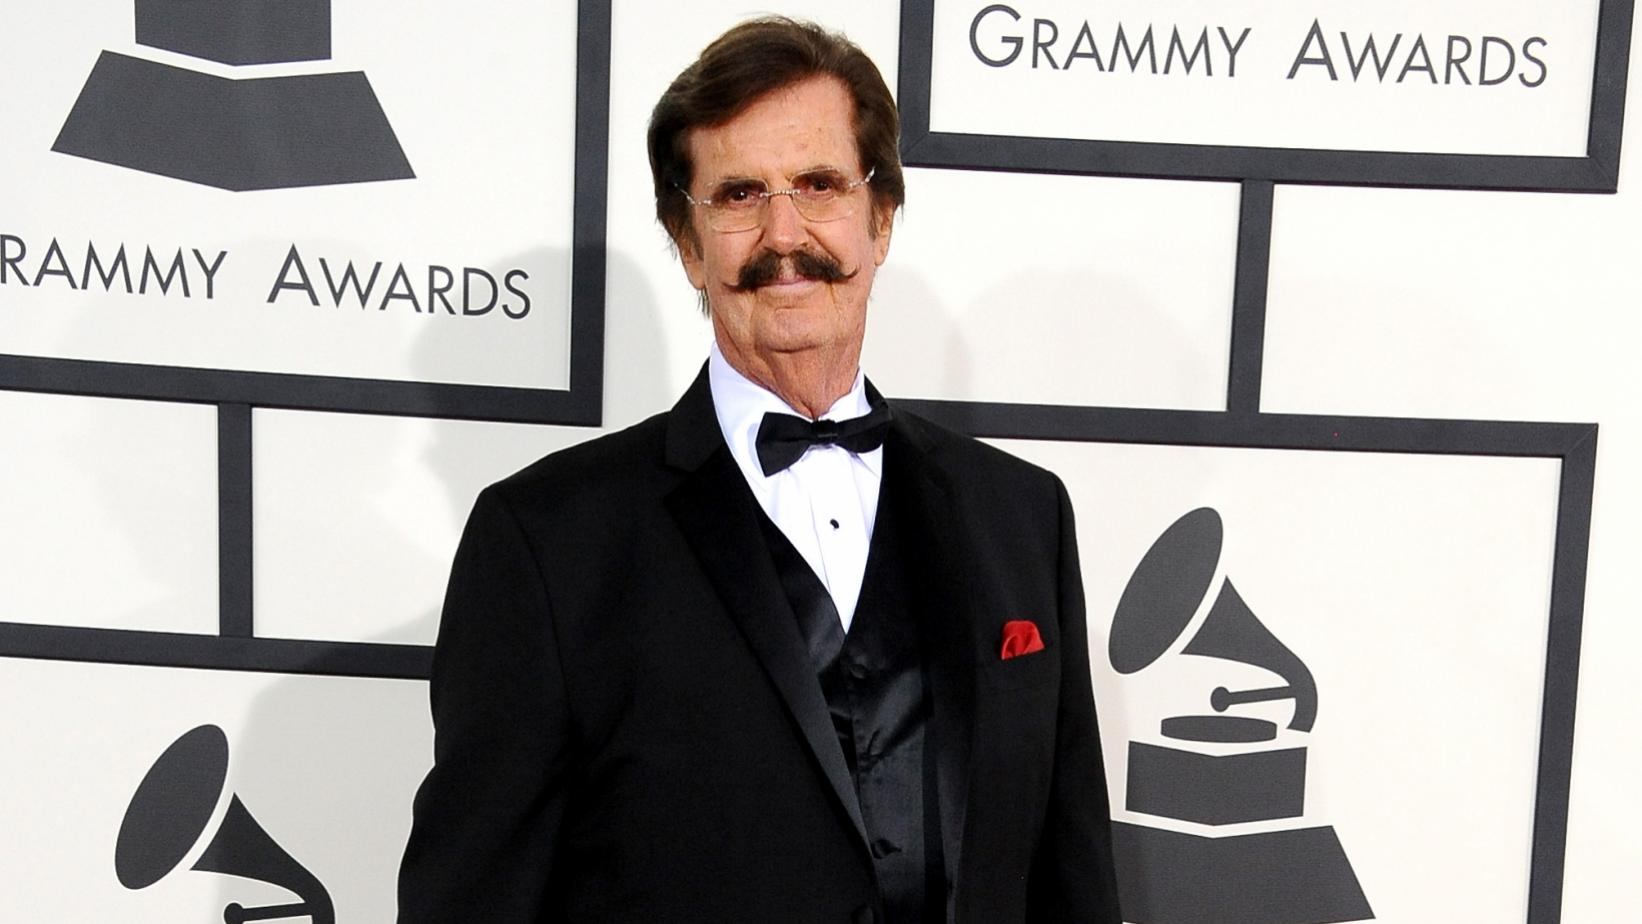 Rick Hall at the 56th GRAMMY Awards in 2014